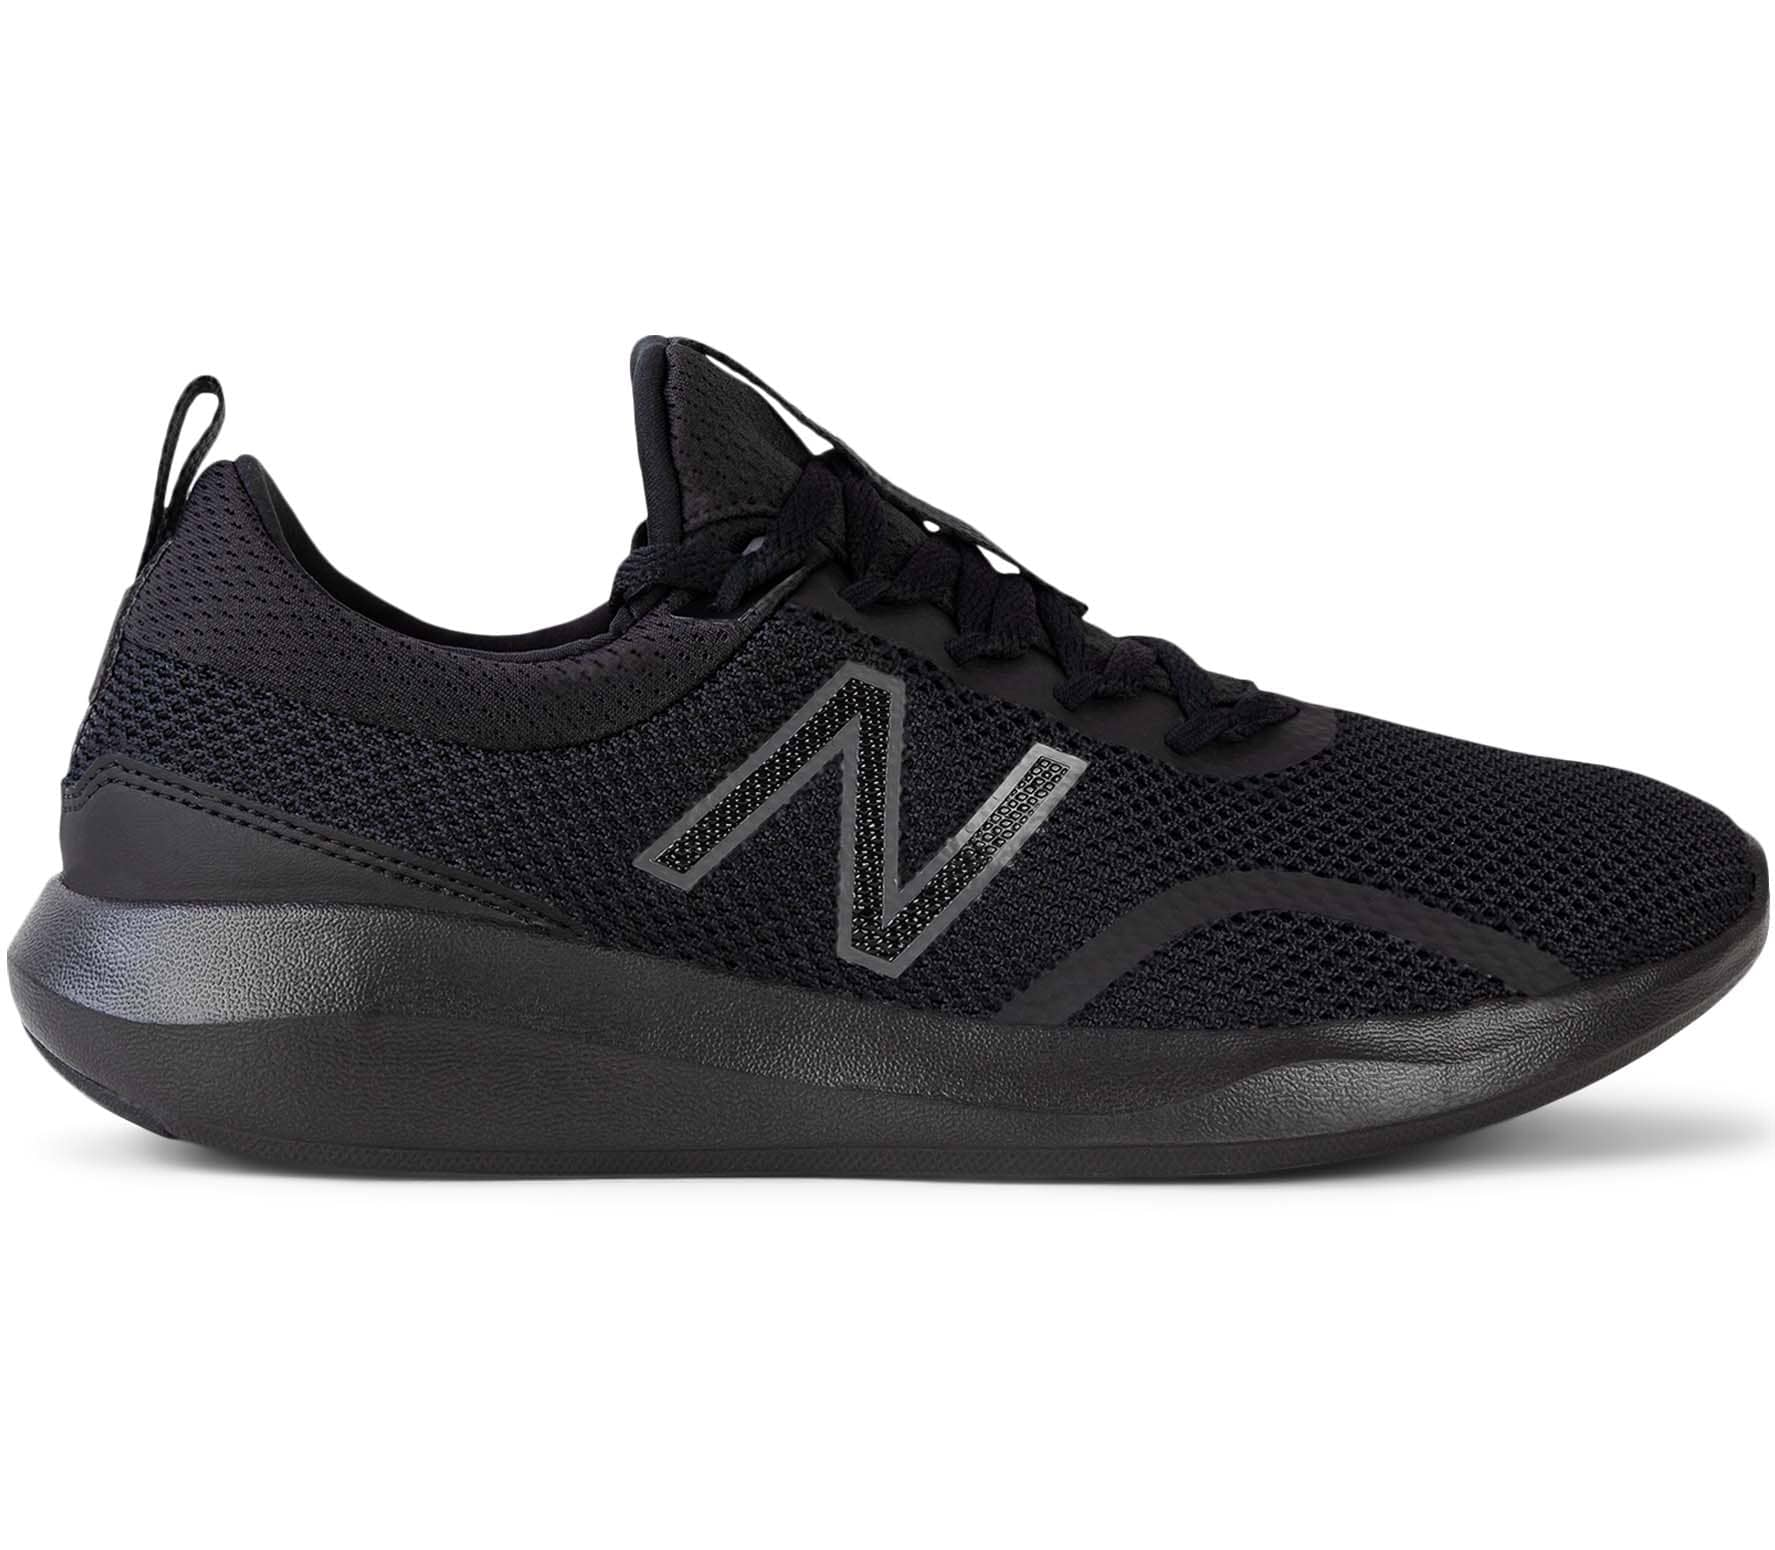 6285869116a7a New Balance Coast v5 Women Running Shoes black - buy it at the ...